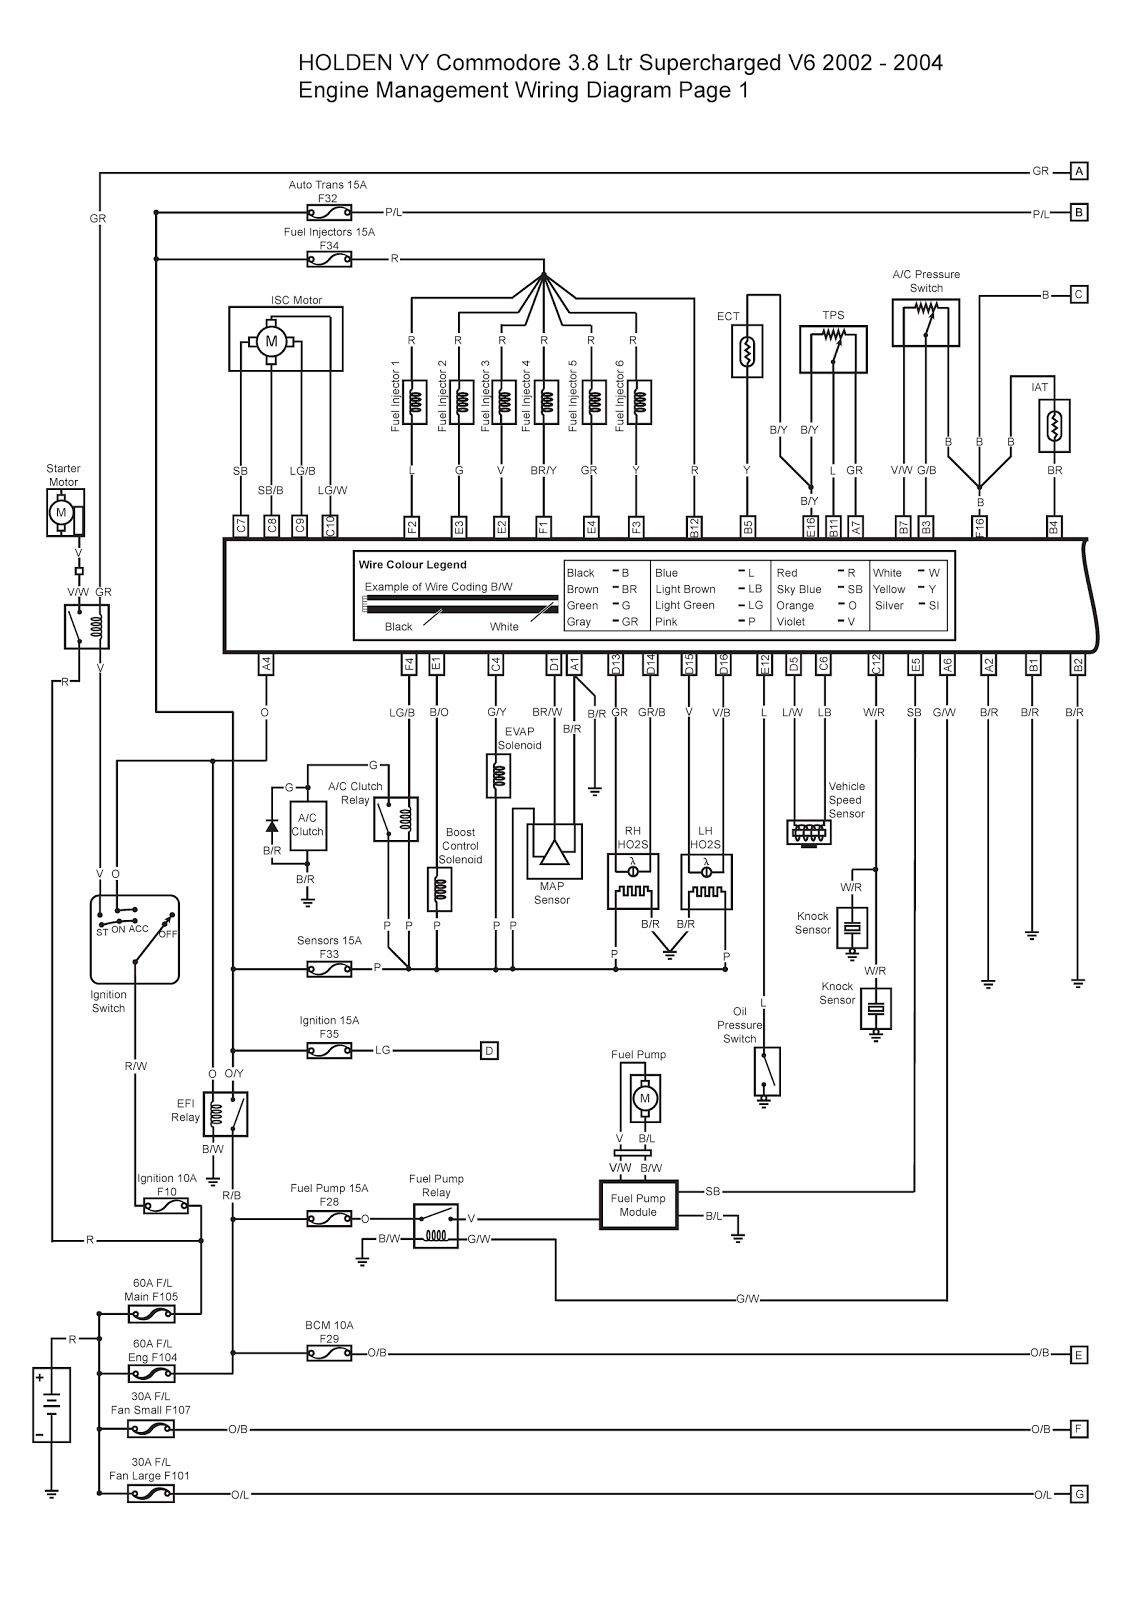 Vz Power Window Wiring Diagram | Online Wiring Diagram